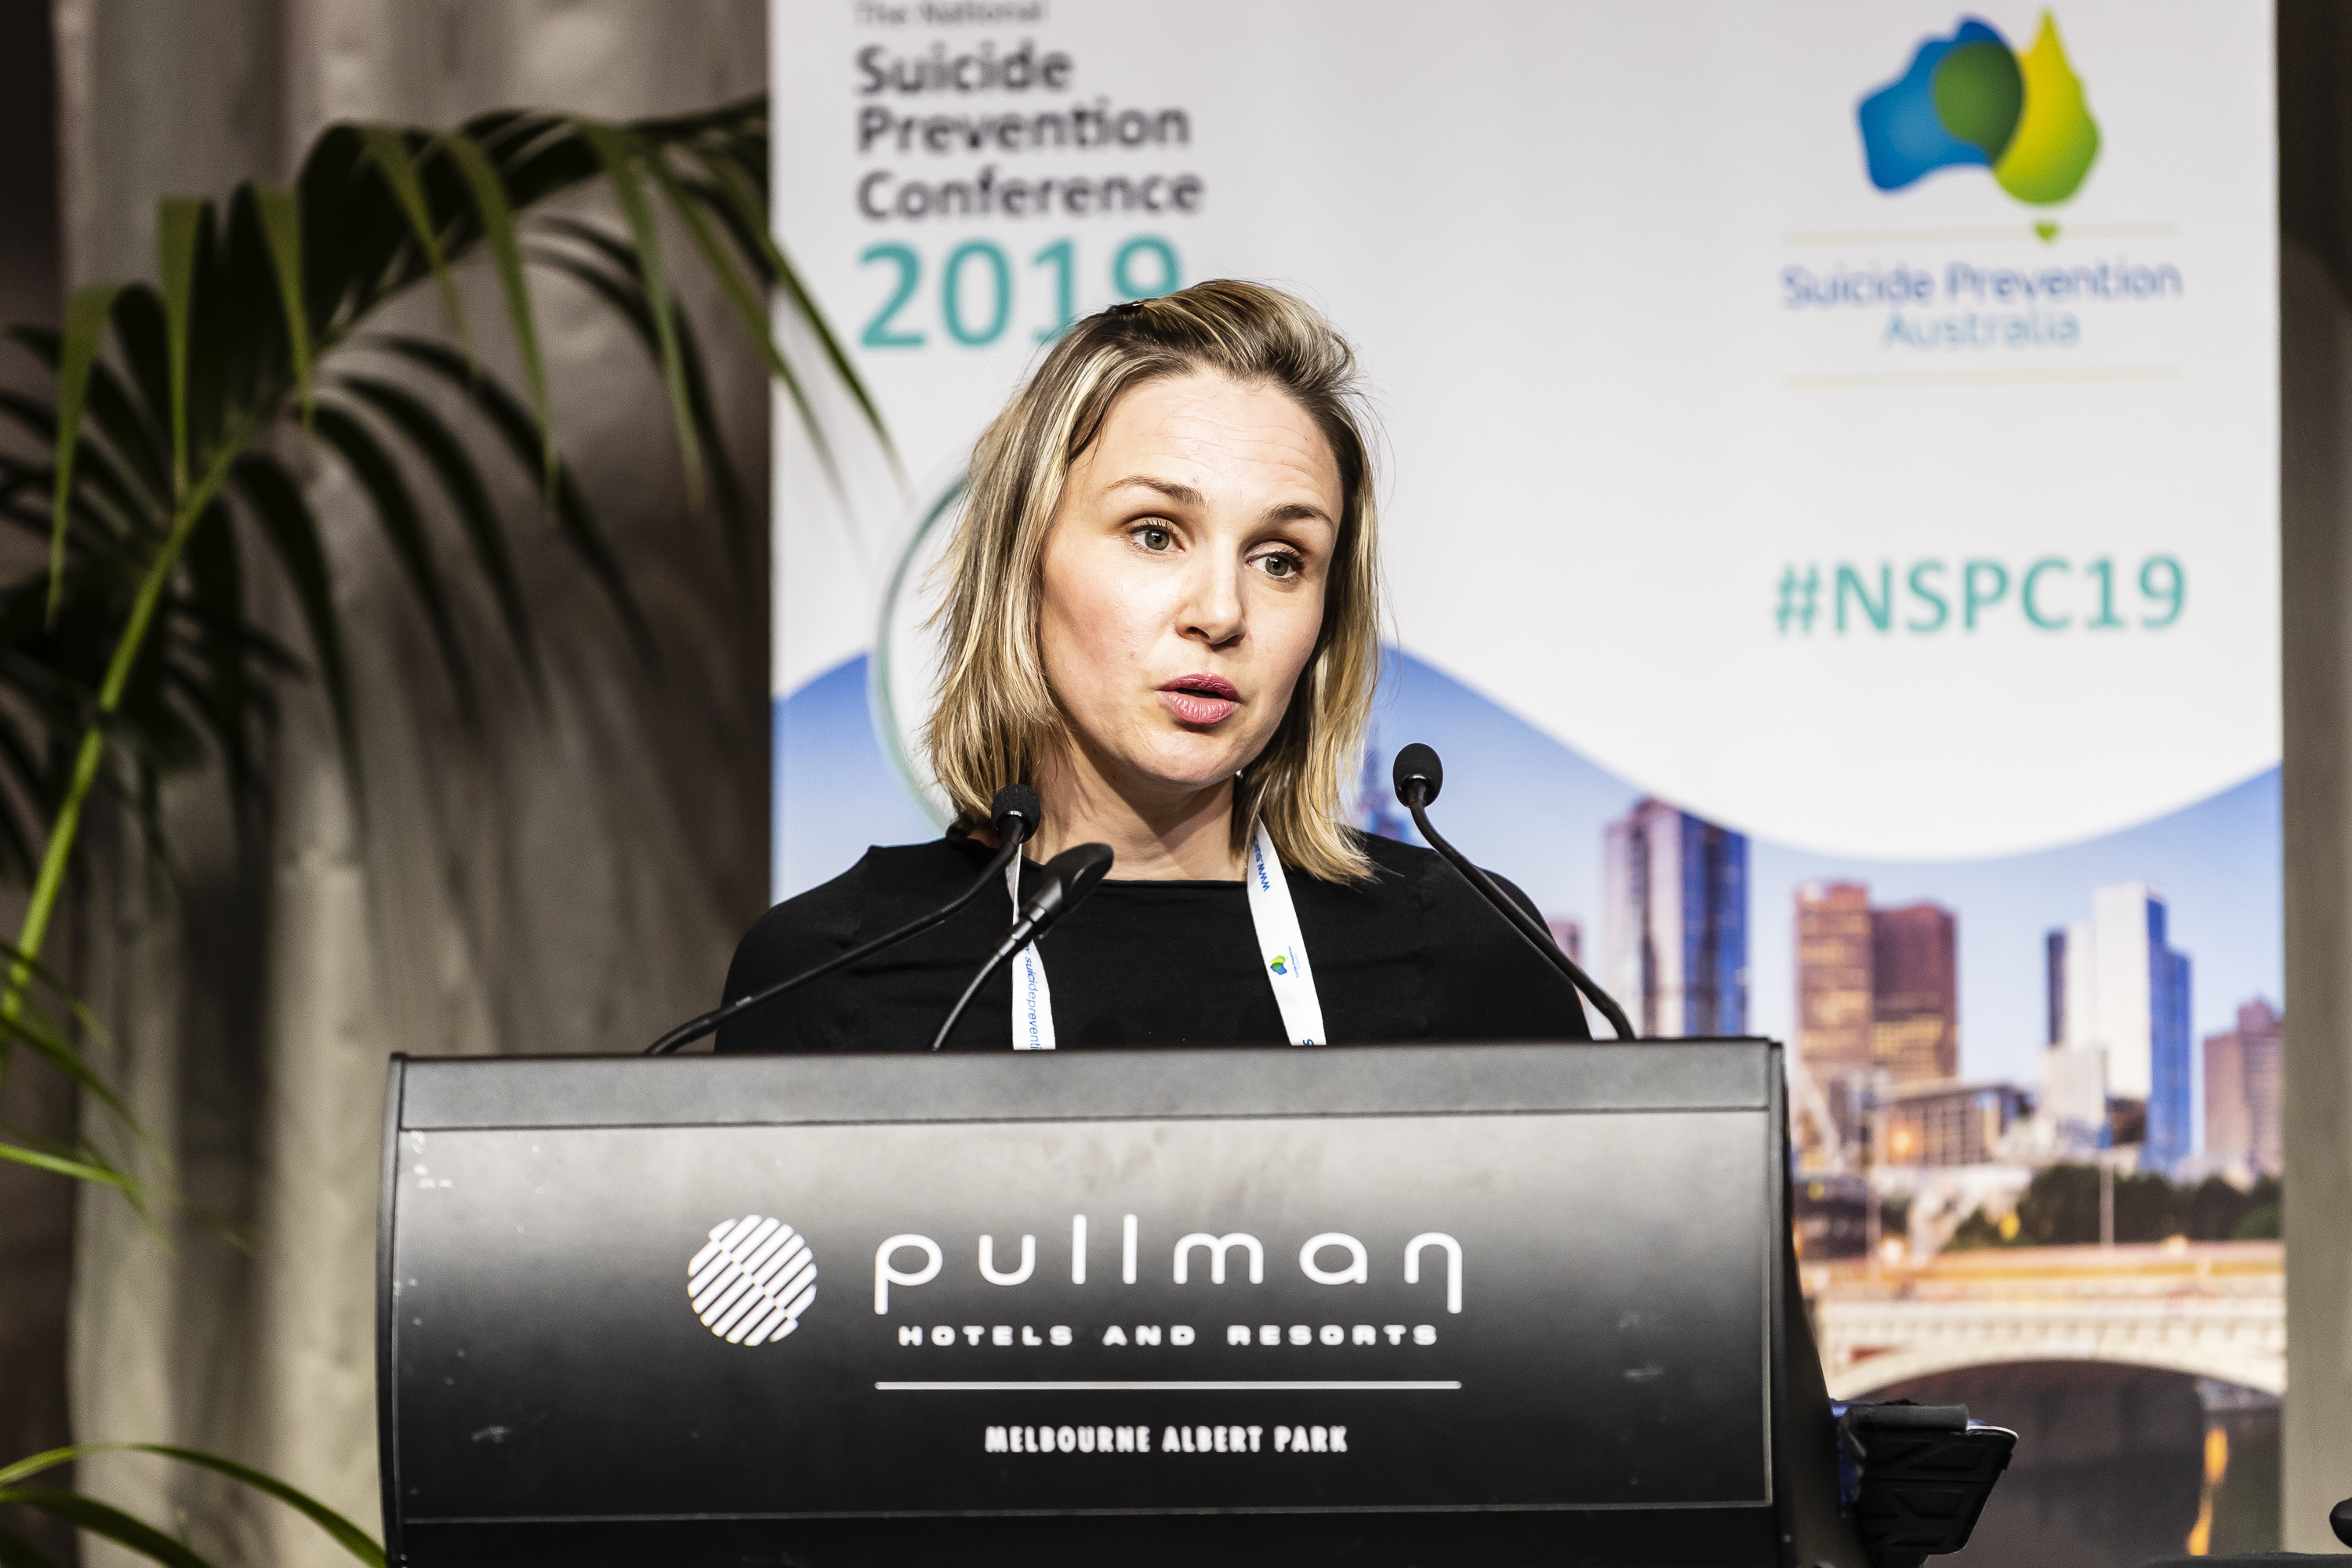 Allison Milner presenting at Suicide Prevention Conference 2019